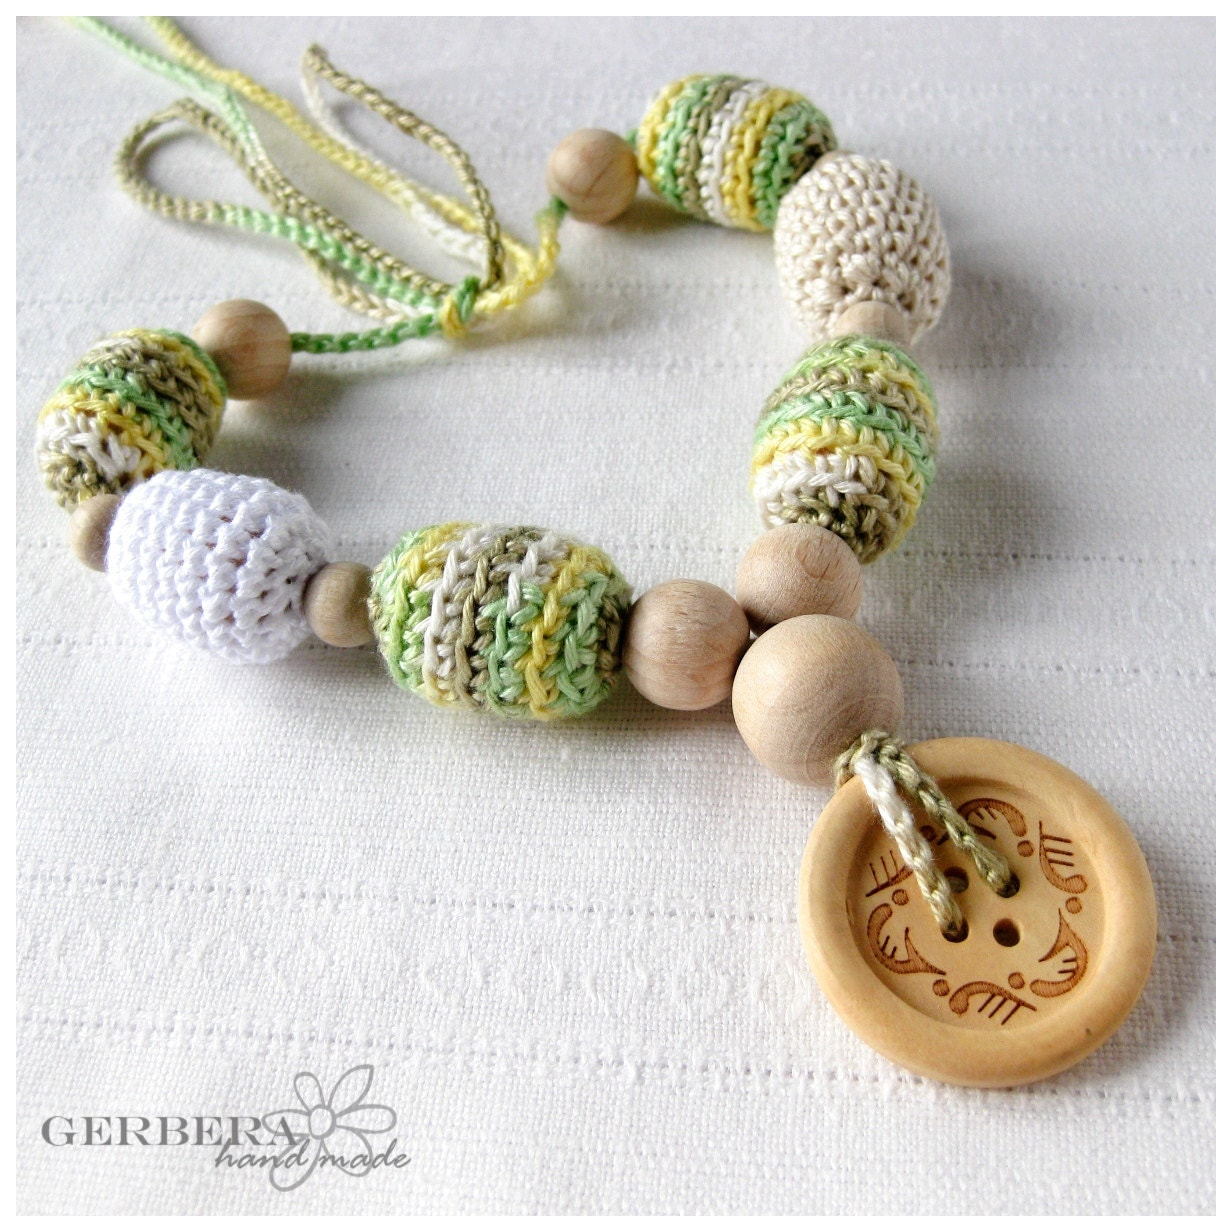 Nursing necklace/ Teething necklace for Mom to Wear and baby - soft green yellow white colors 100% cotton wood beads - RainbowGerbera